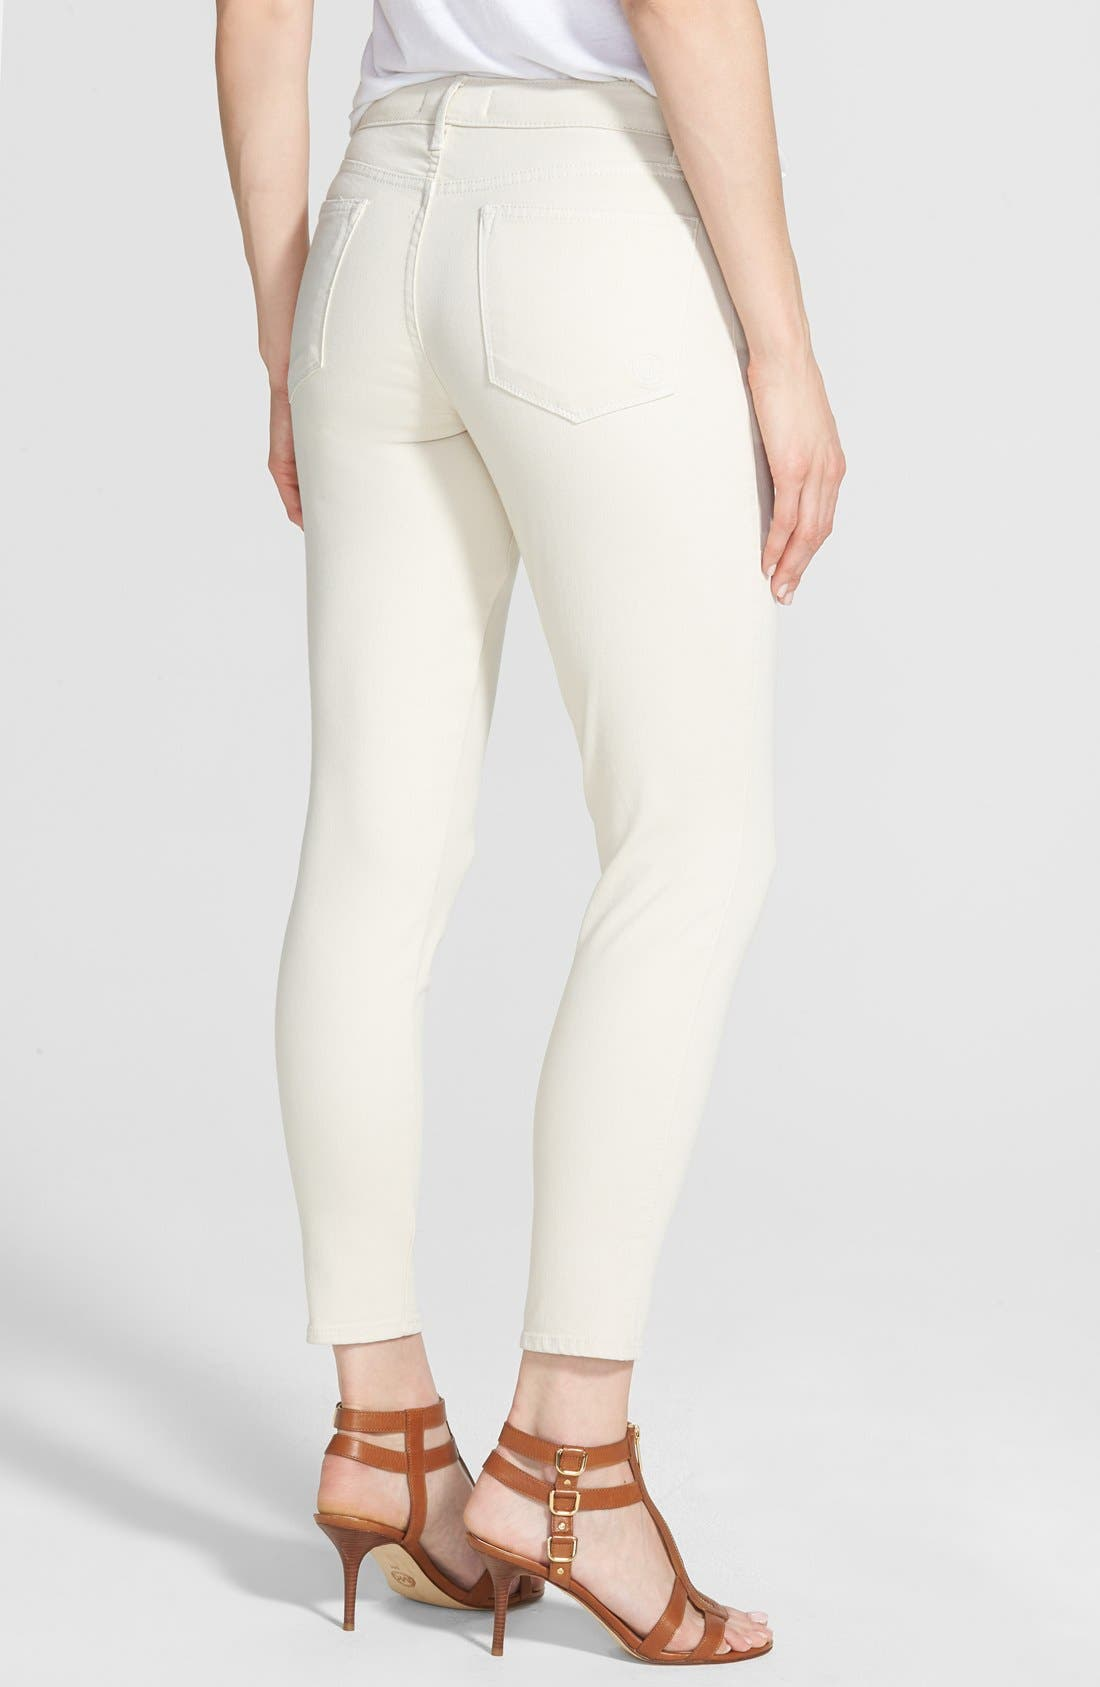 'Wisdom' Stretch Twill Ankle Skinny Jeans,                             Alternate thumbnail 2, color,                             251